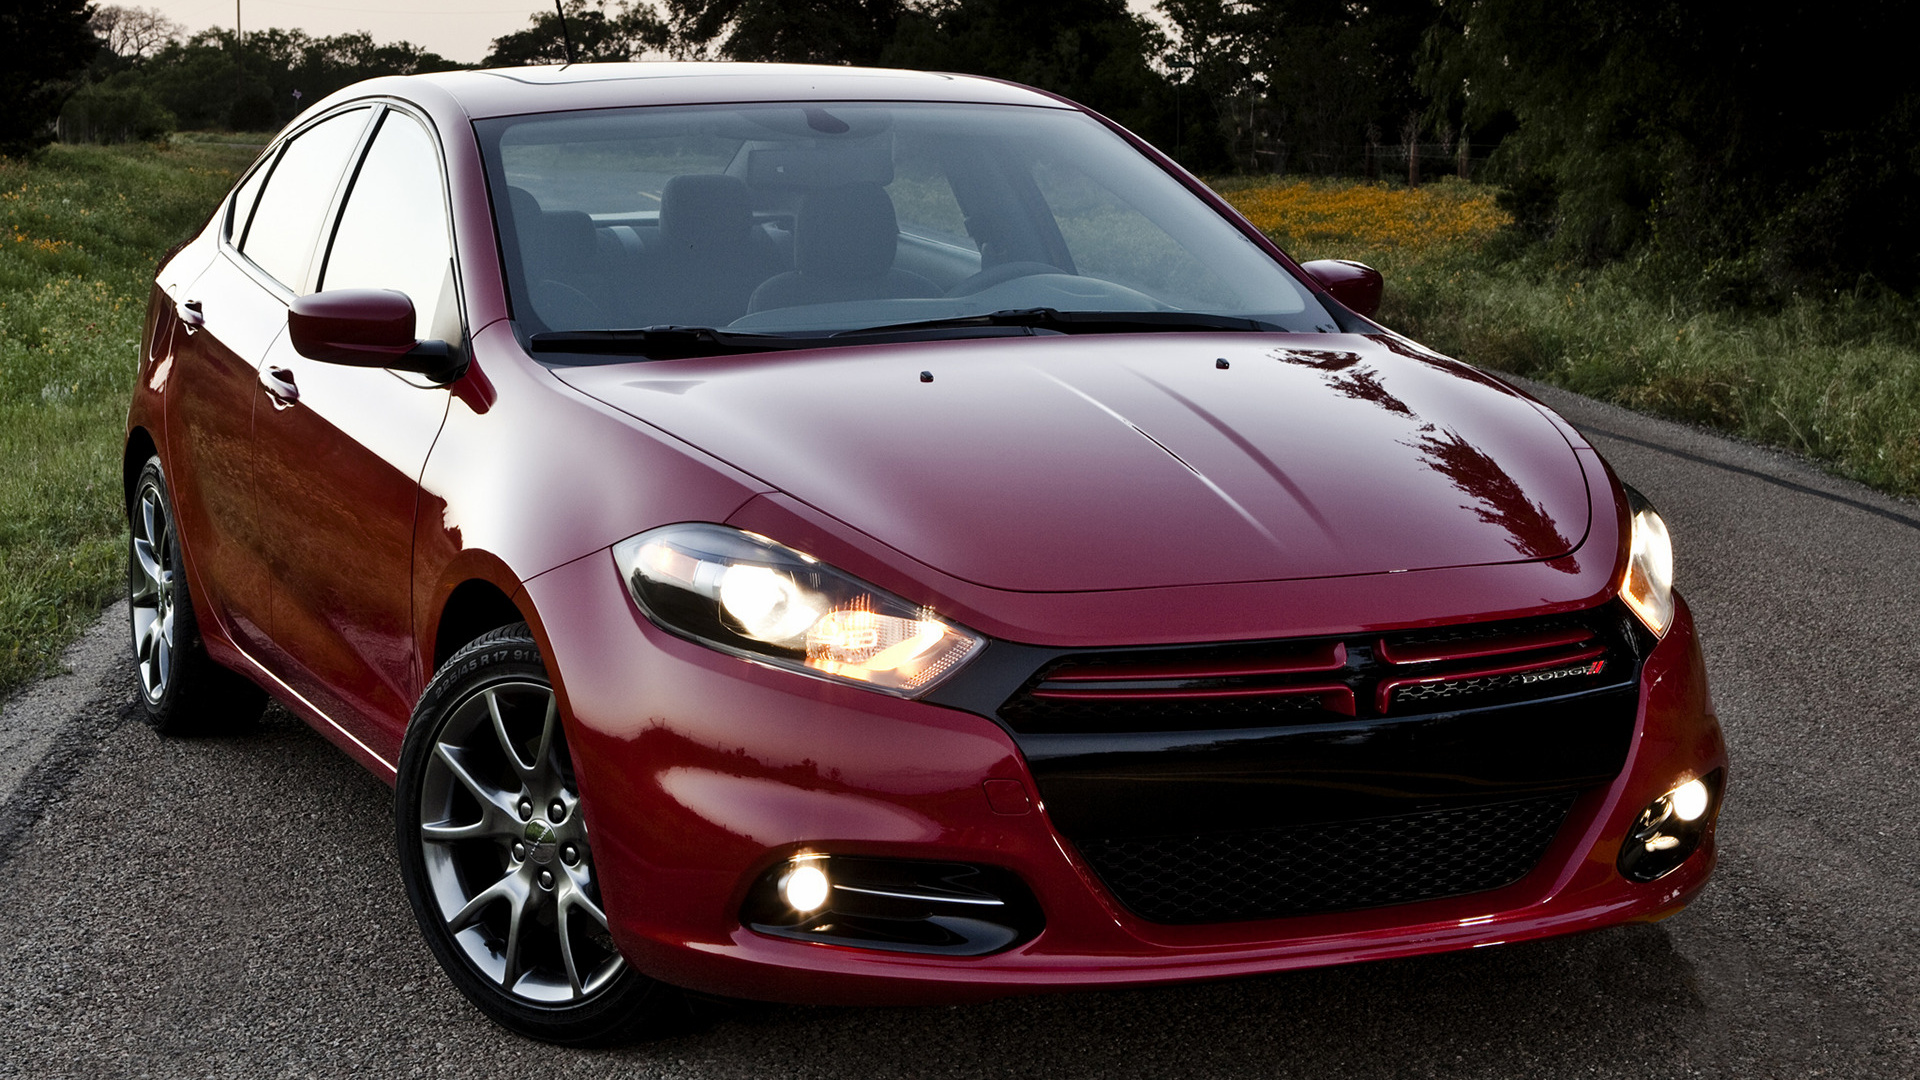 2012 Dodge Dart Rallye - Wallpapers and HD Images | Car Pixel